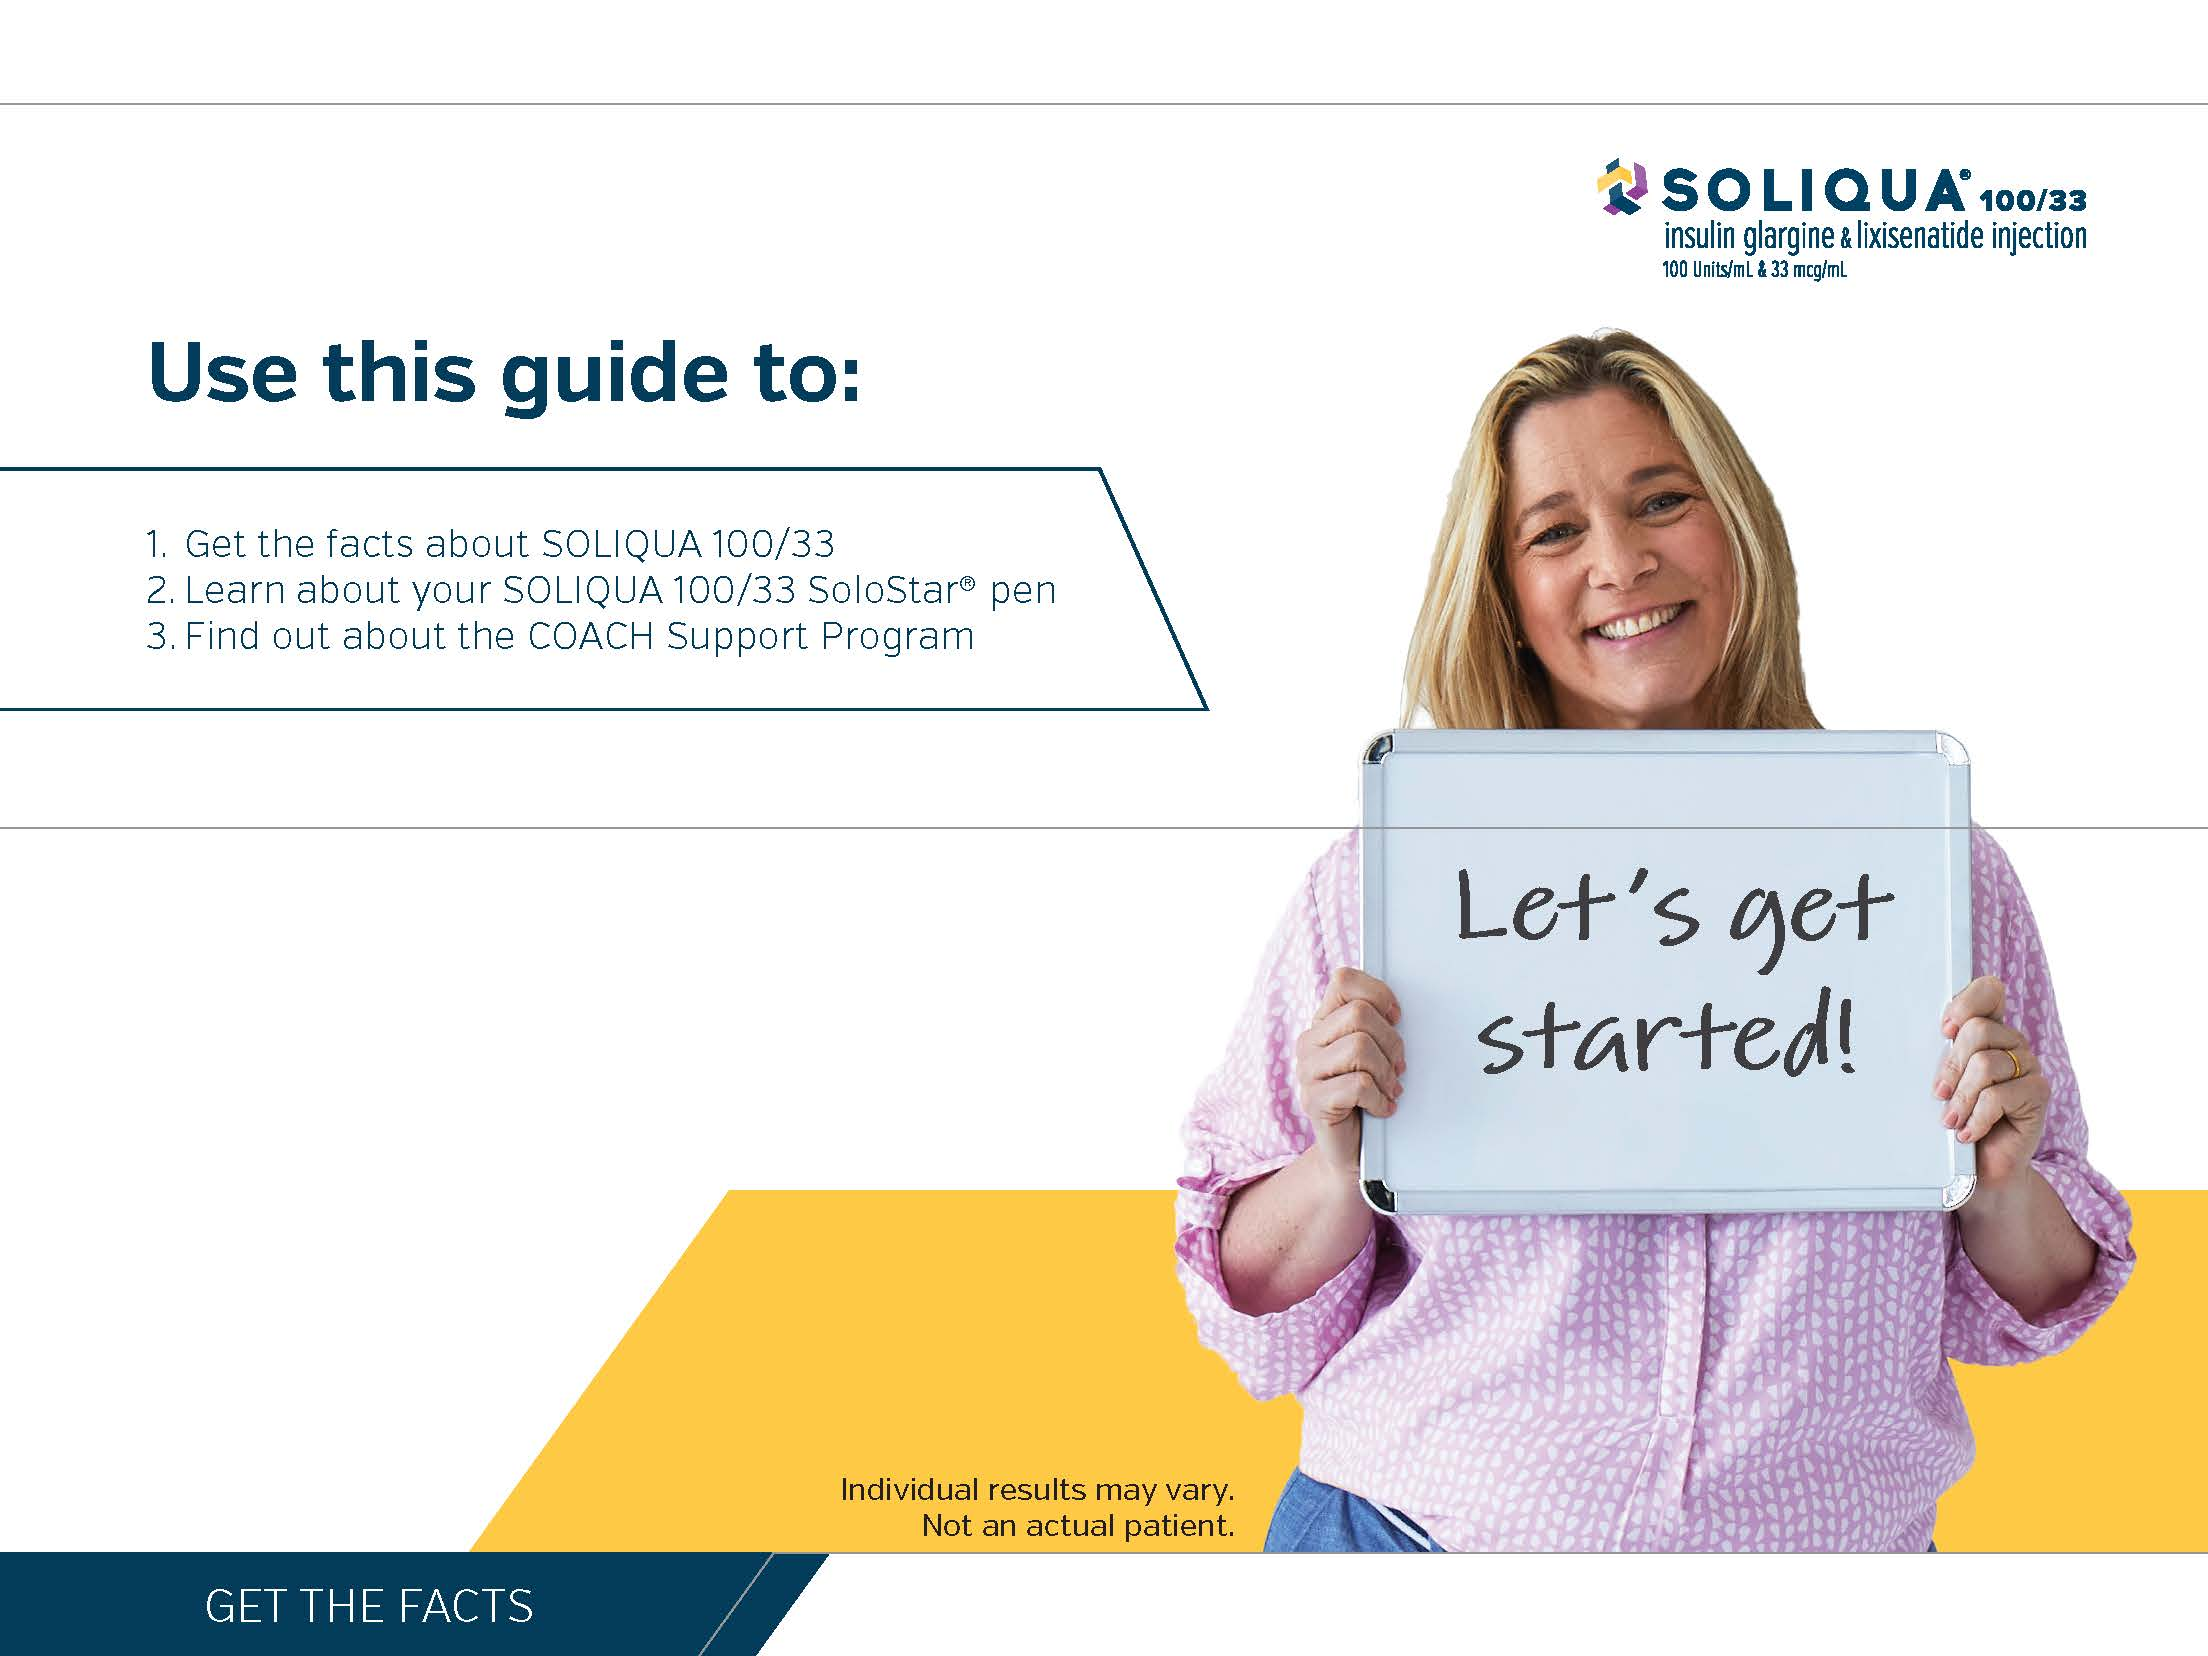 SAUS.SQA.17.04.1224_Starter_Kit_Core_Brochure_v24 copy 2_Page_02.jpg